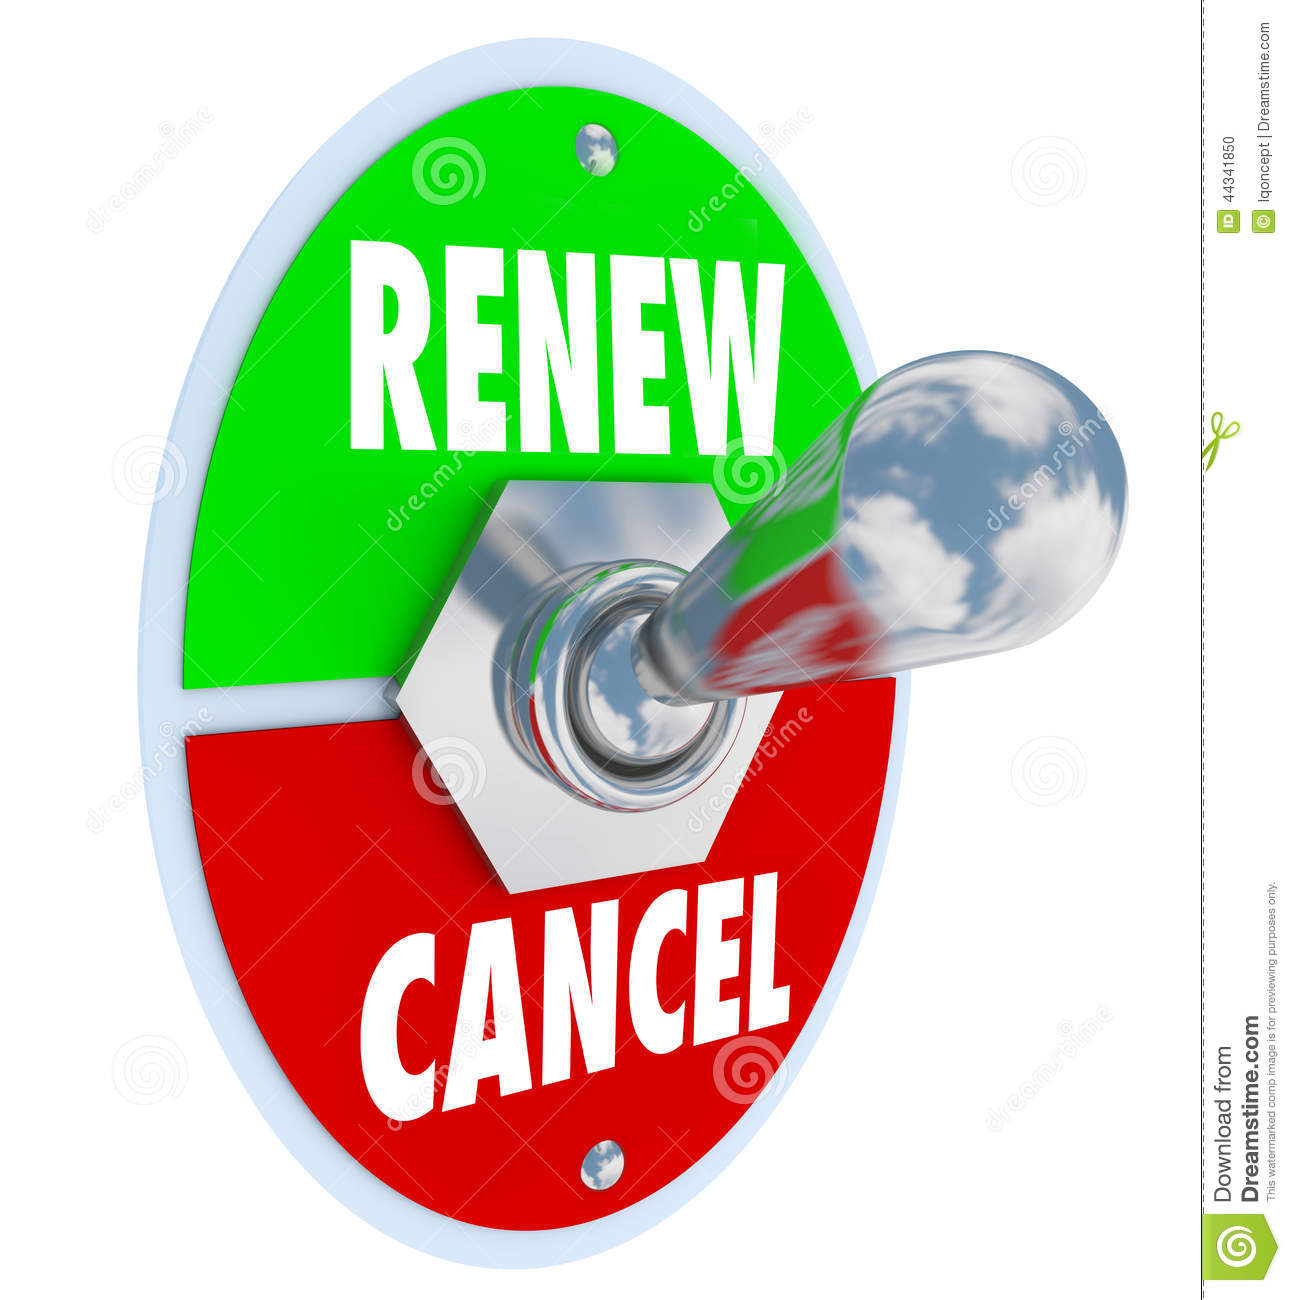 renew vs cancel words product service renewal cancellation christmas presents clipart black and white christmas present clip art